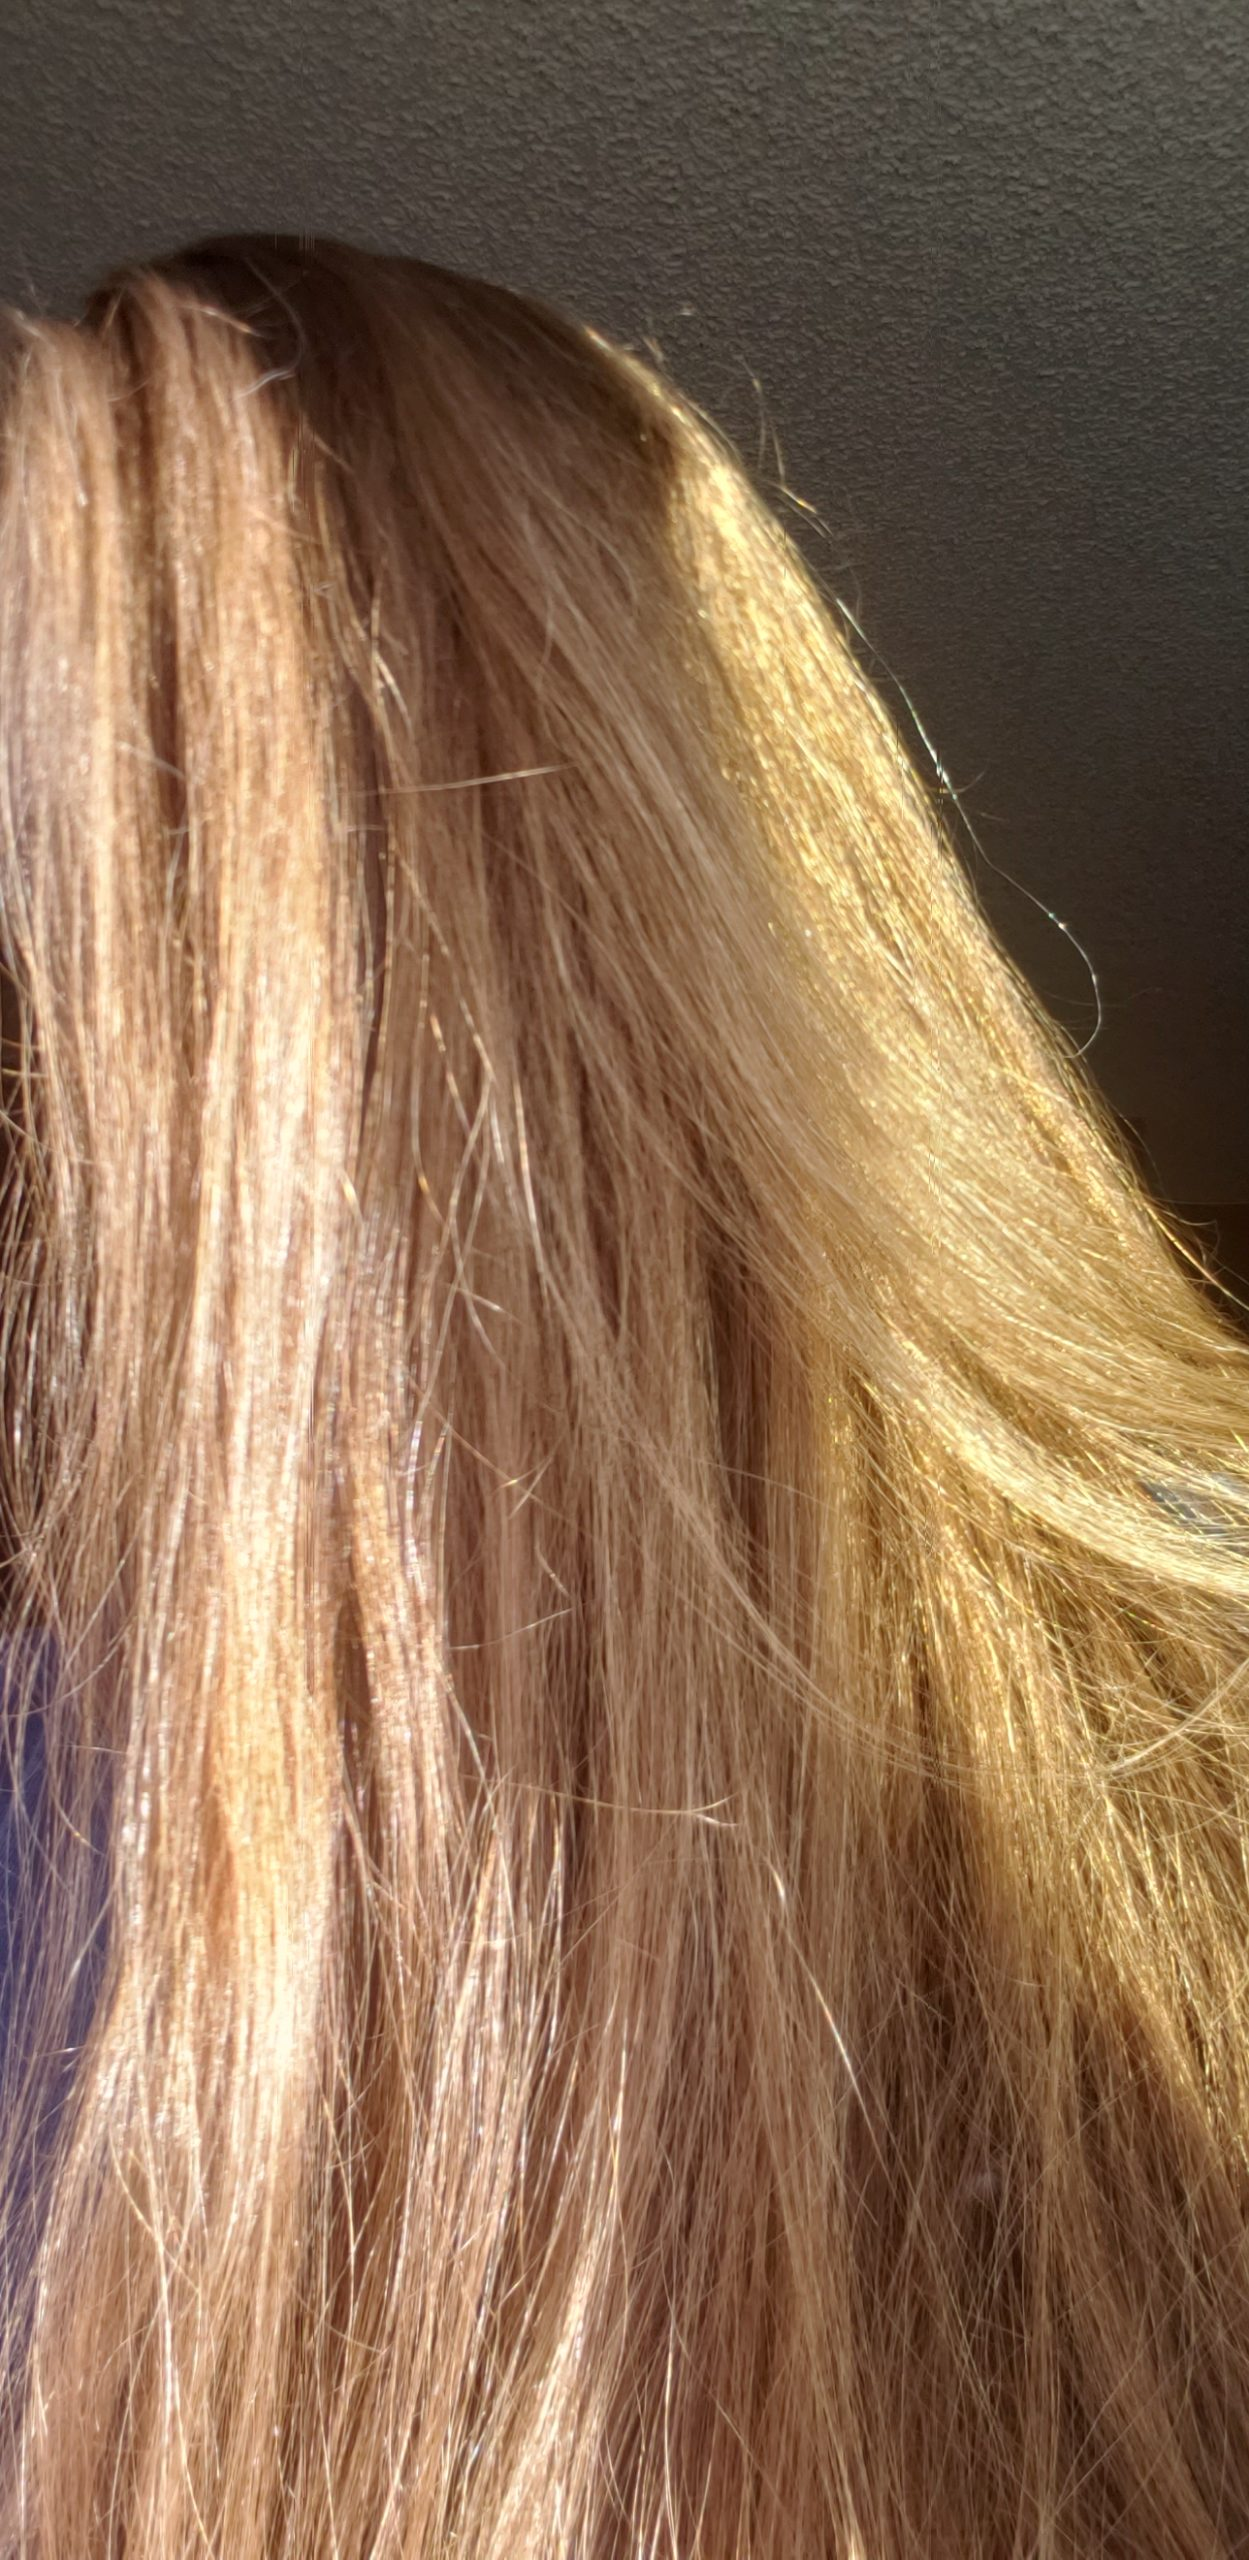 15 inches of golden brown, unprocessed hair